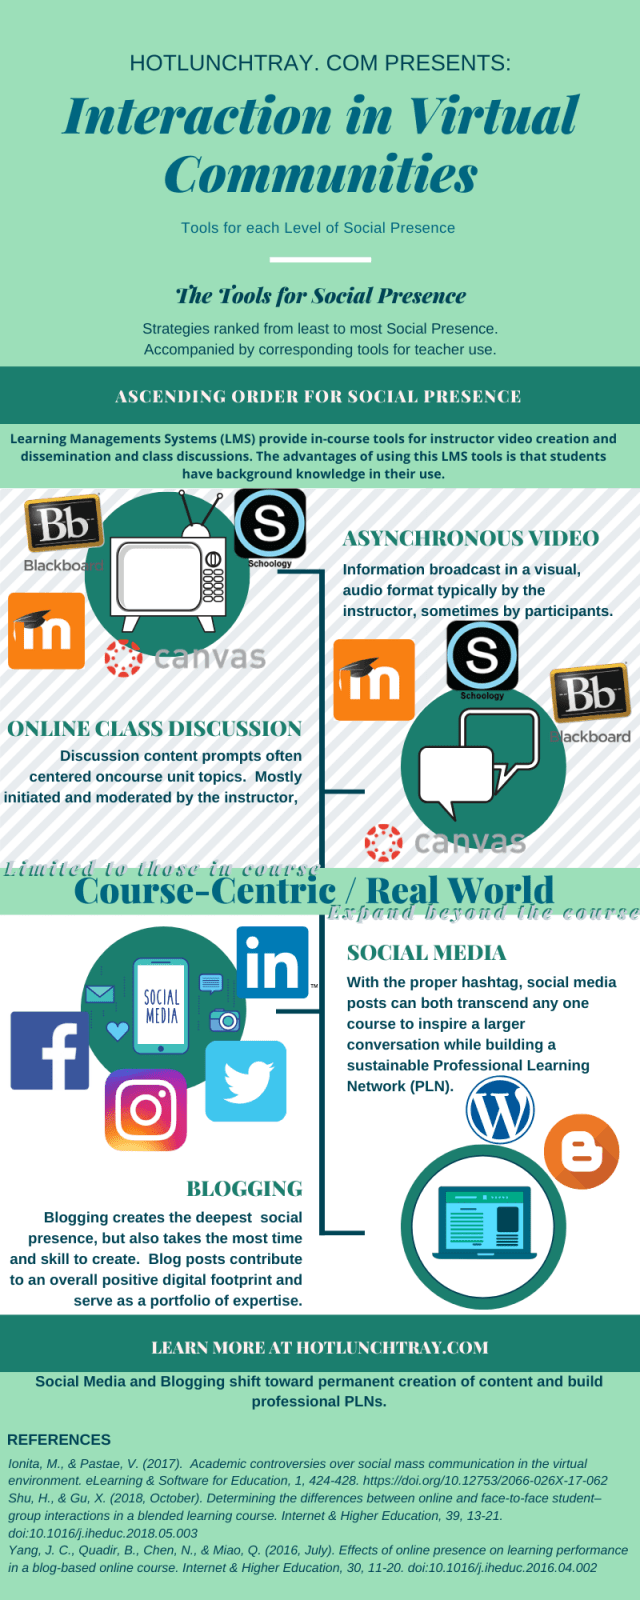 Interaction in Virtual Communities Infographic